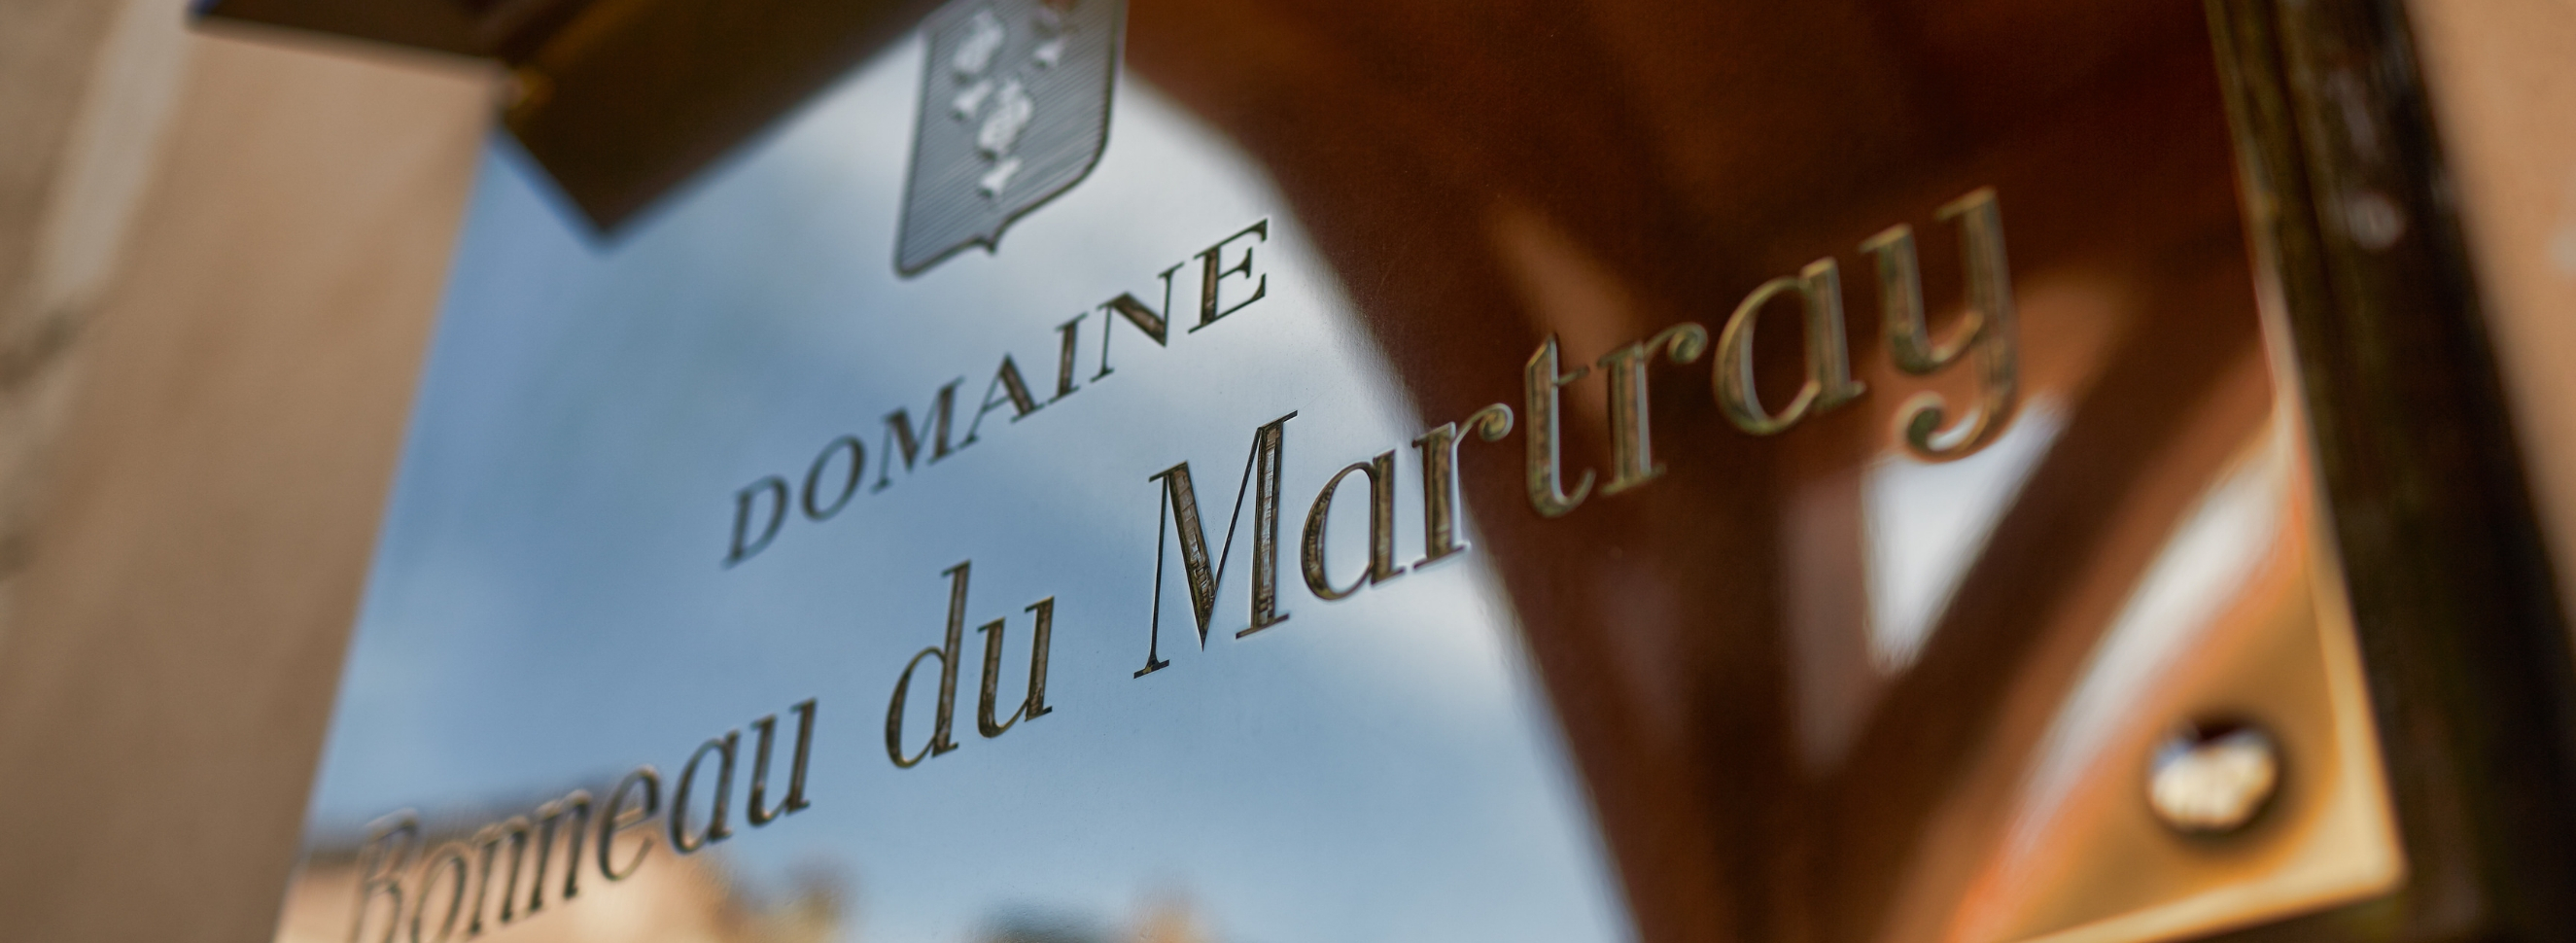 Domaine Bonneau du Martray